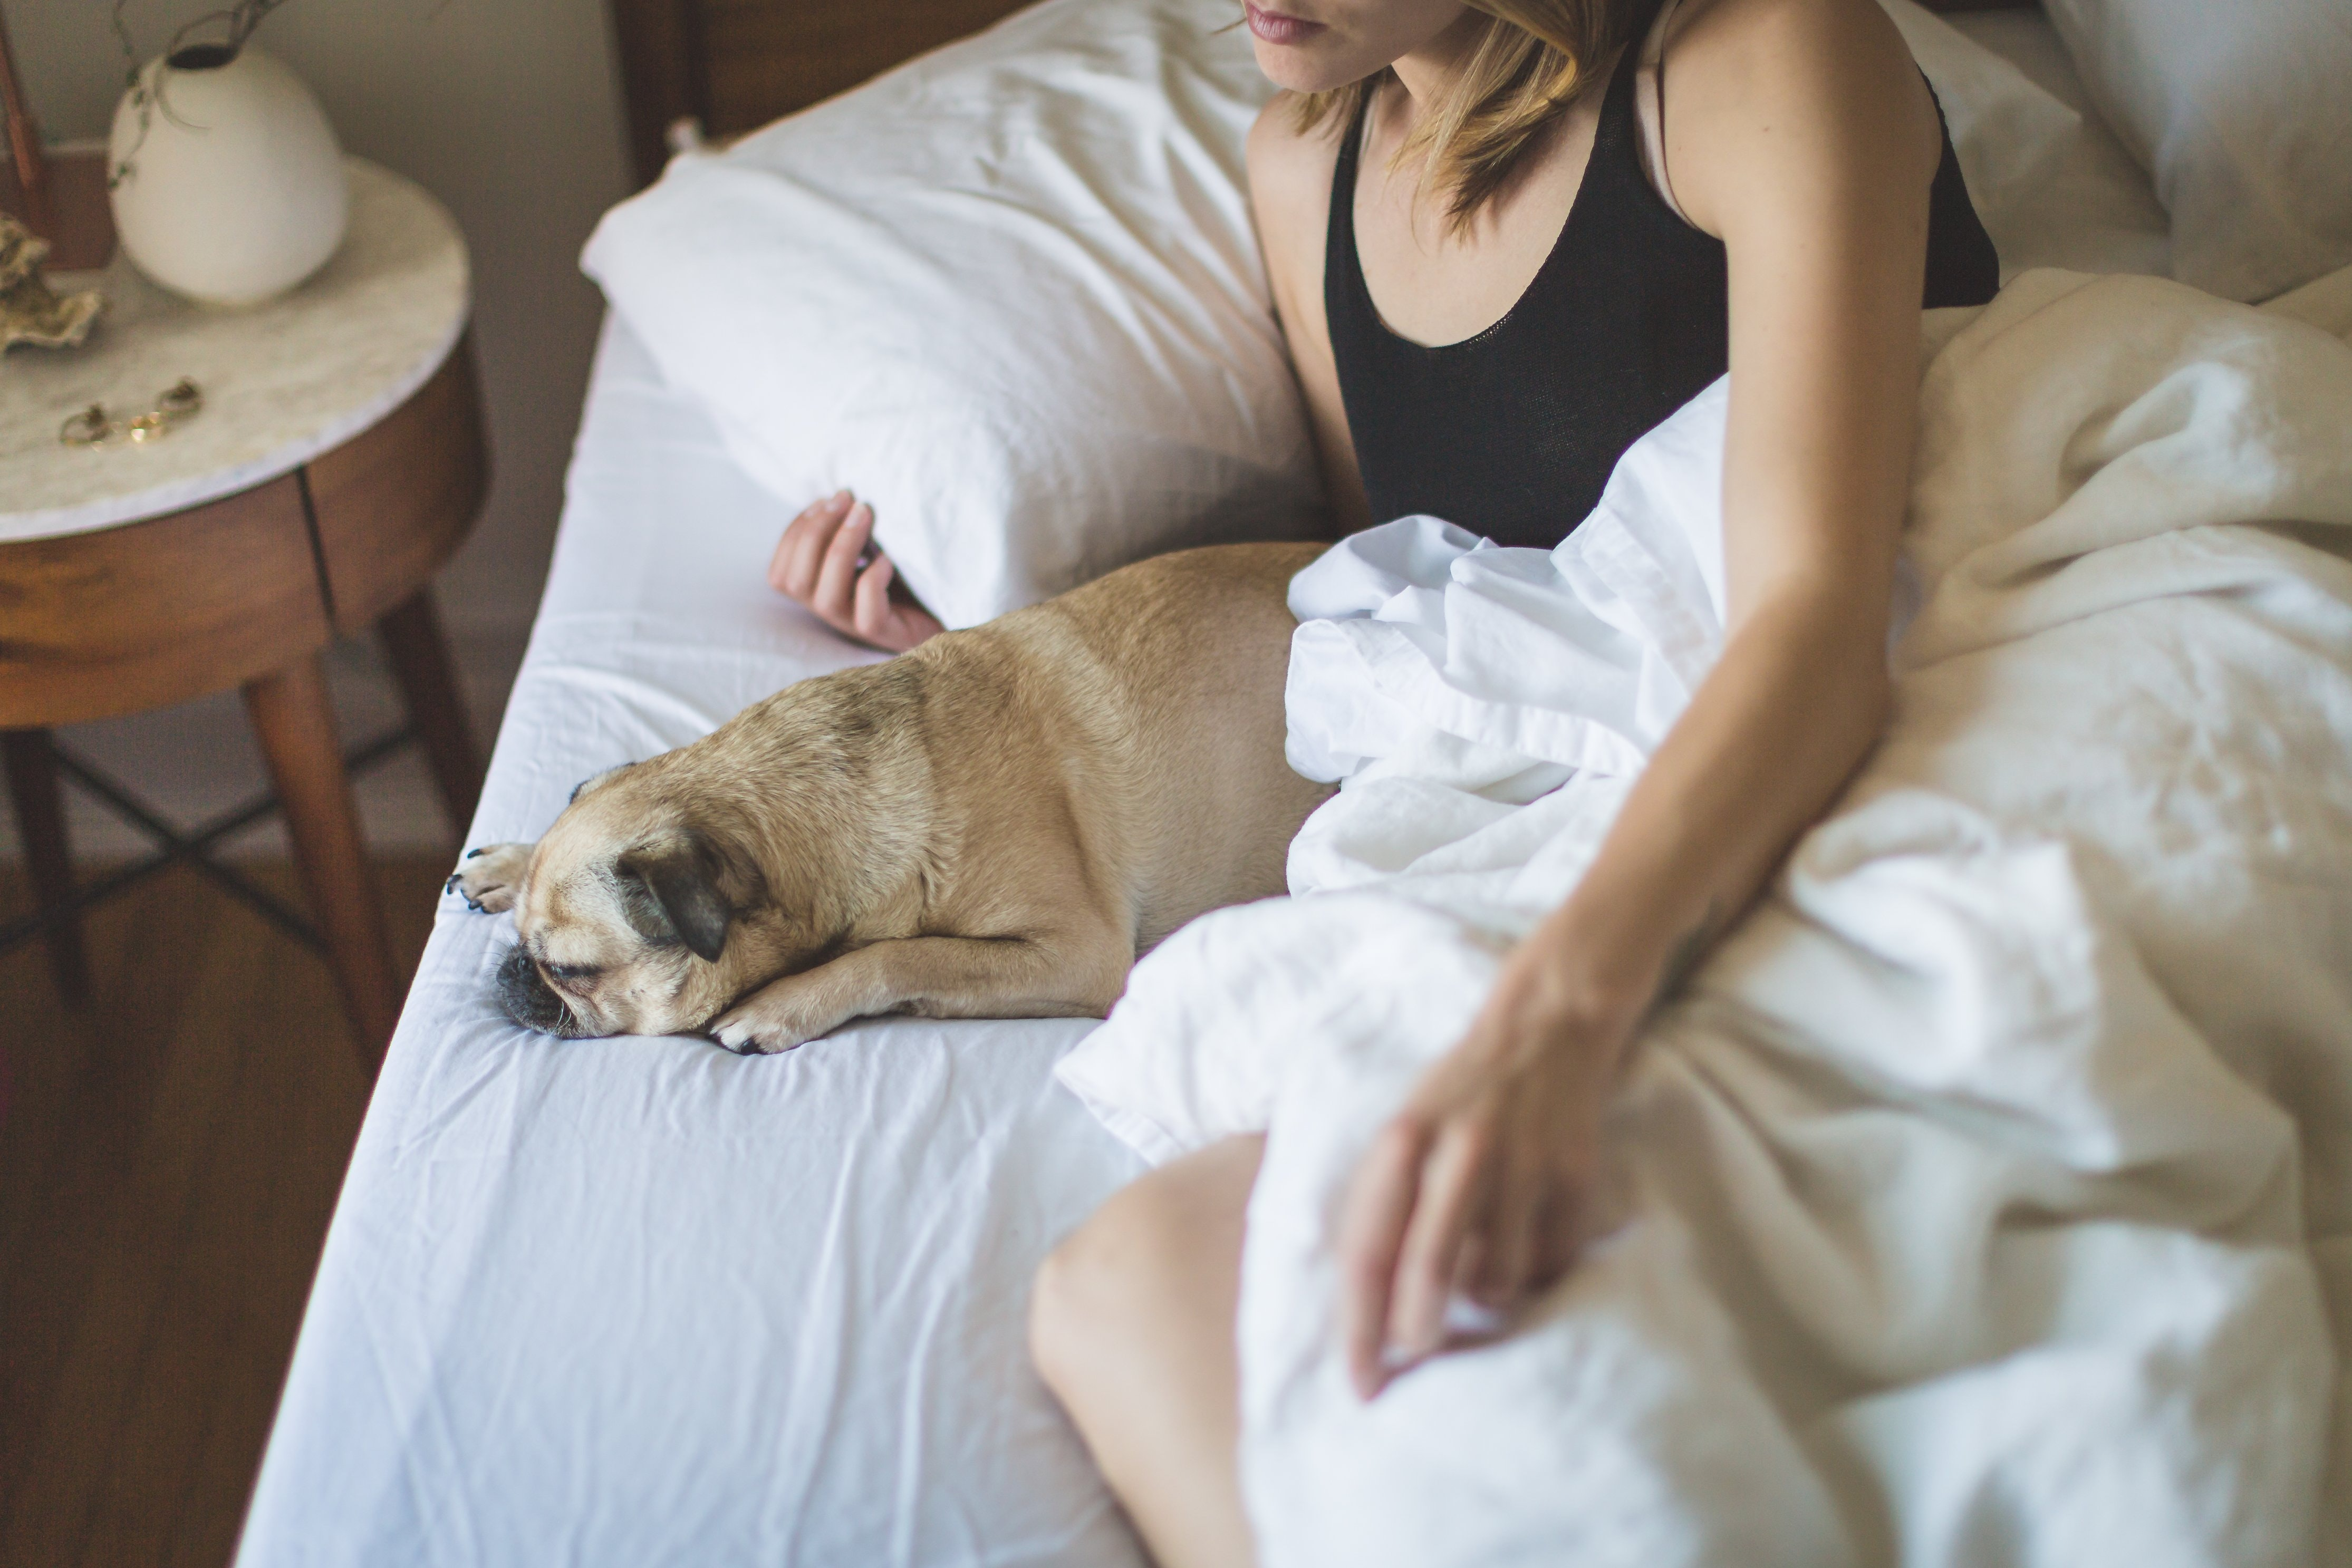 Dogs are said to be less unsettling as a sleeping companion when compared to men. (Source: Pexels)